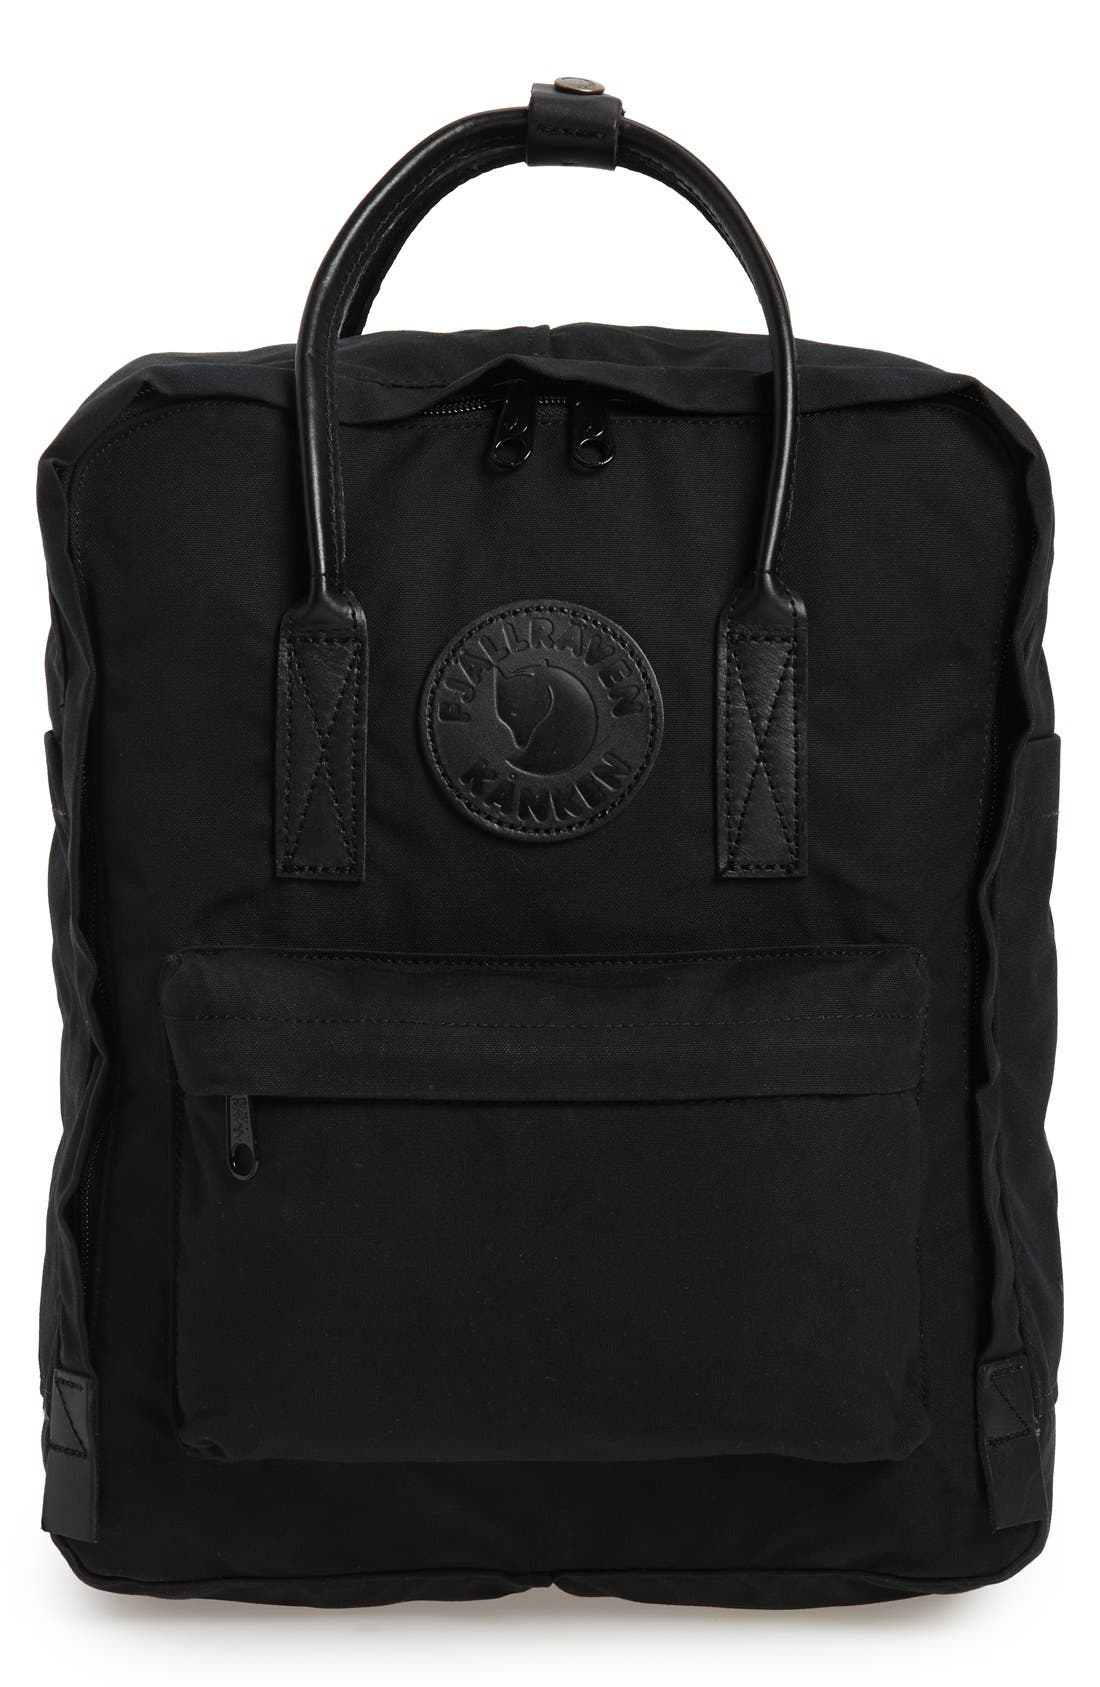 FJÄLLRÄVEN 'Kånken No. 2' Water Resistant Backpack